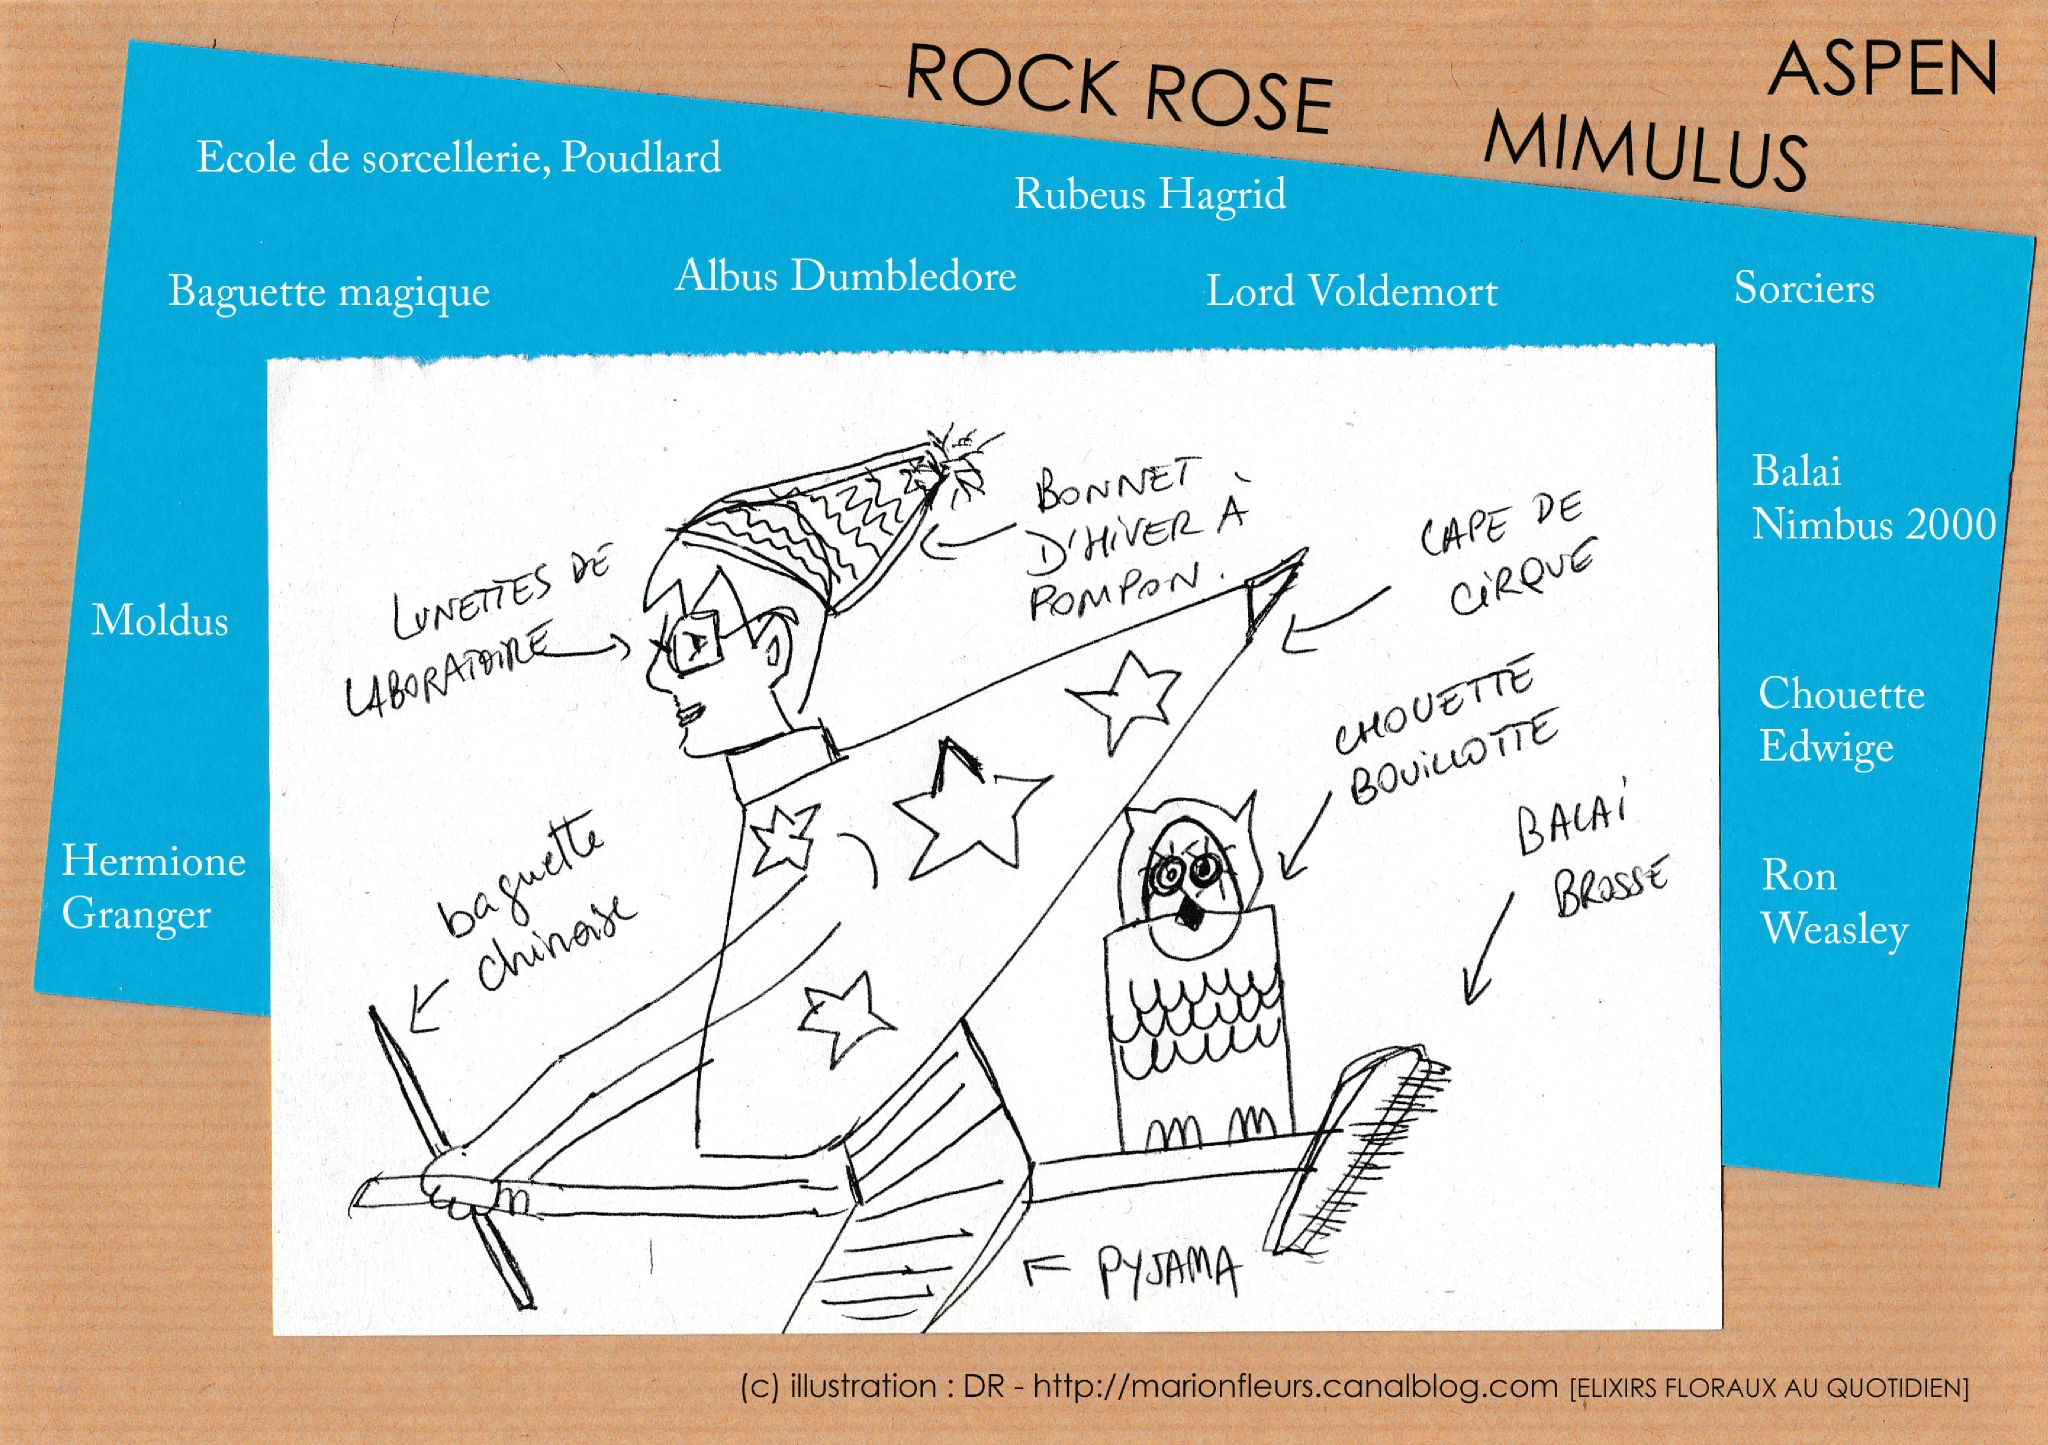 Harry Potter et les mondes invisibles / Tanis Helliwell / Fleurs de Bach : ASPEN, Rock Rose, White Chestnut